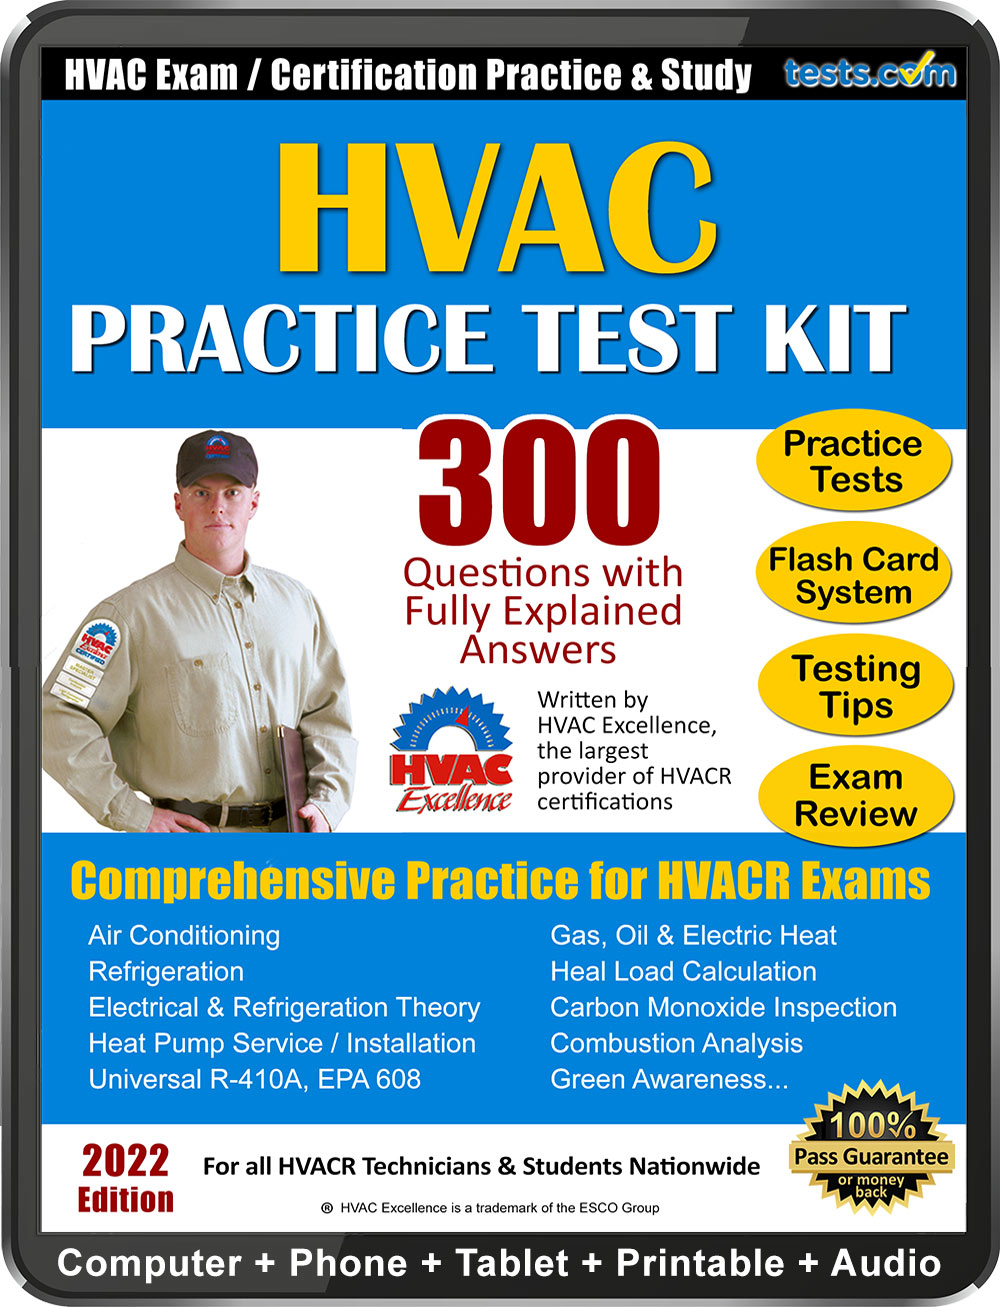 Florida state certified class a air conditioning contractor and epa - Hvacr Practice Test Kit